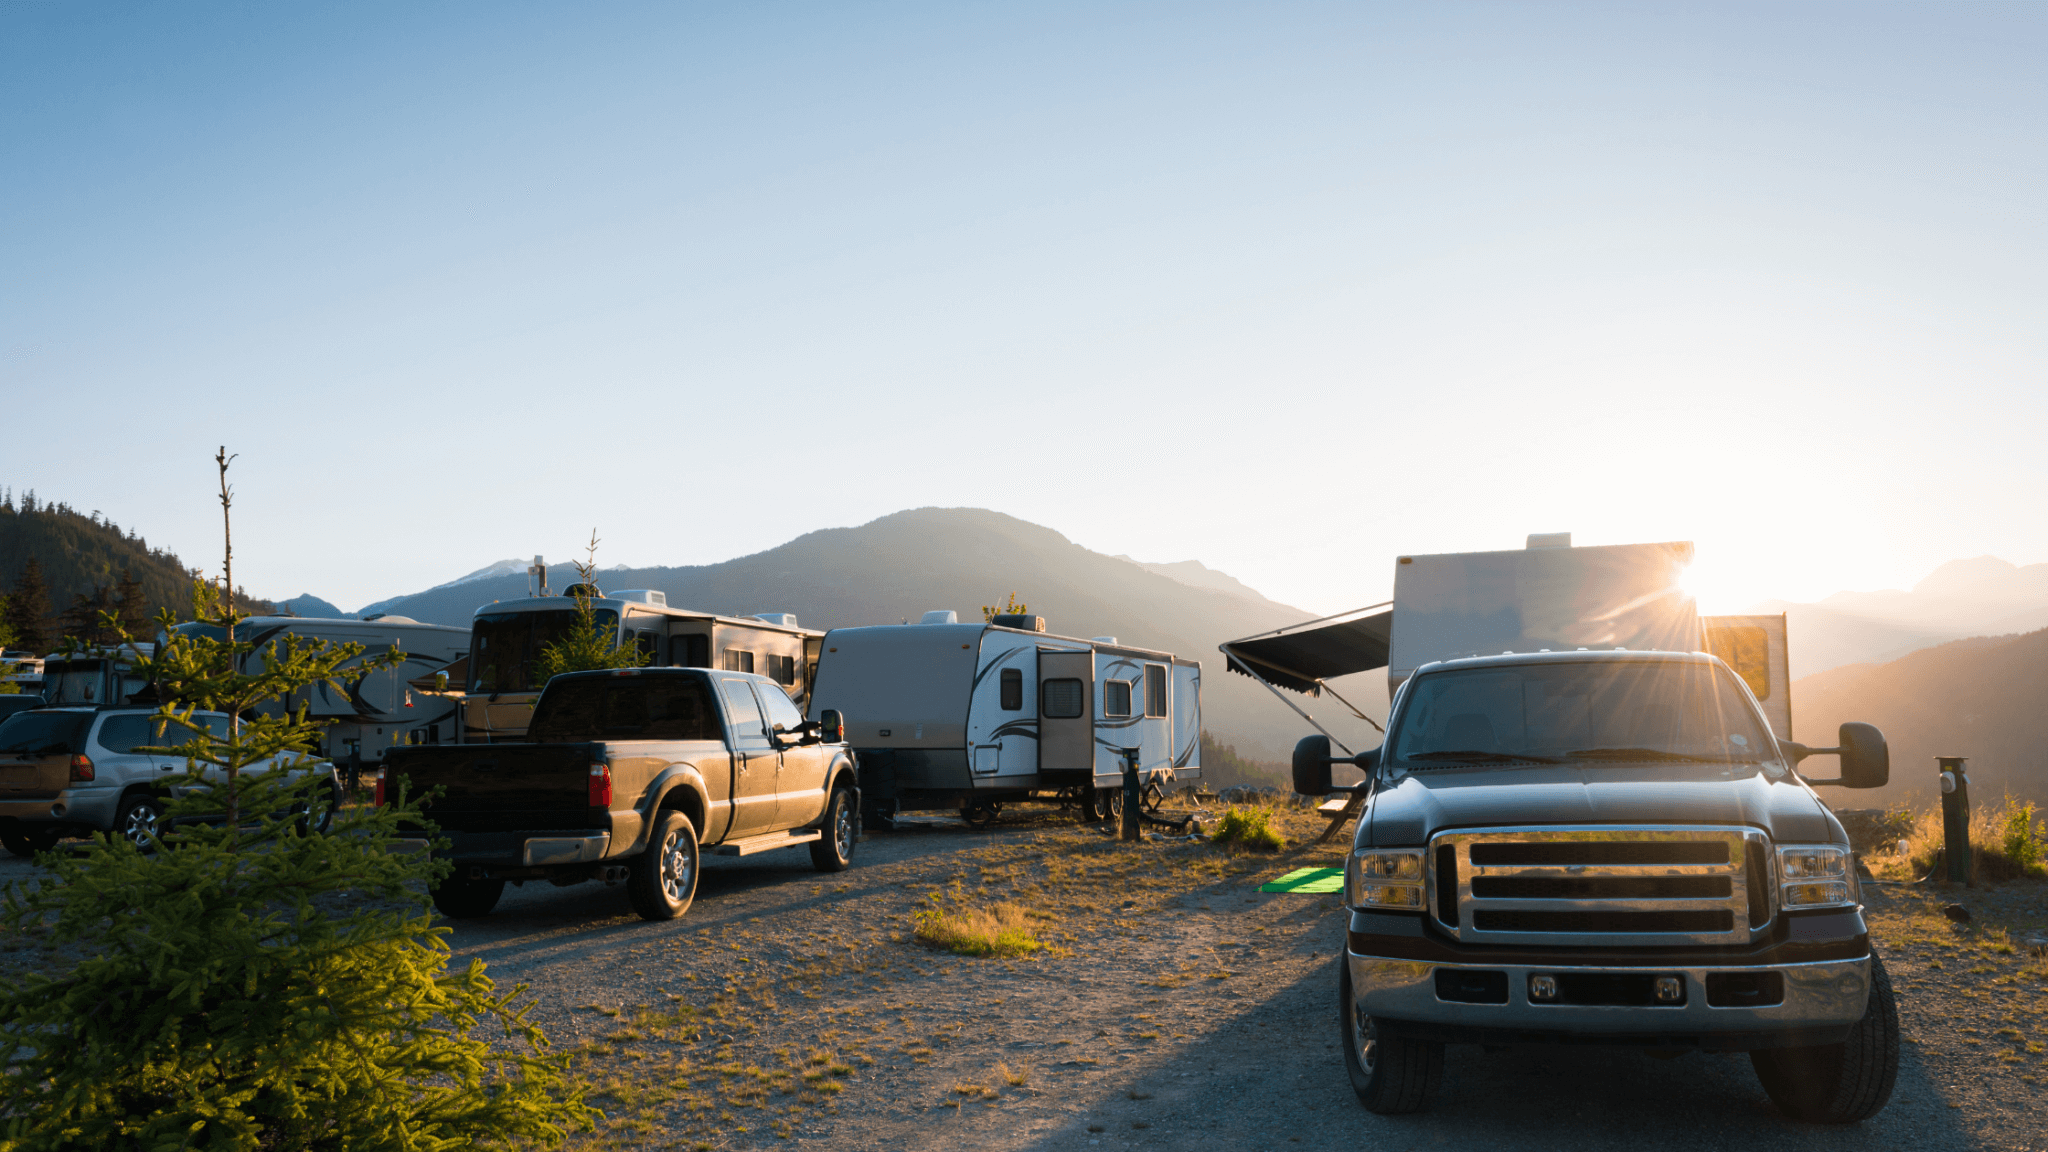 different RV sizes in campground